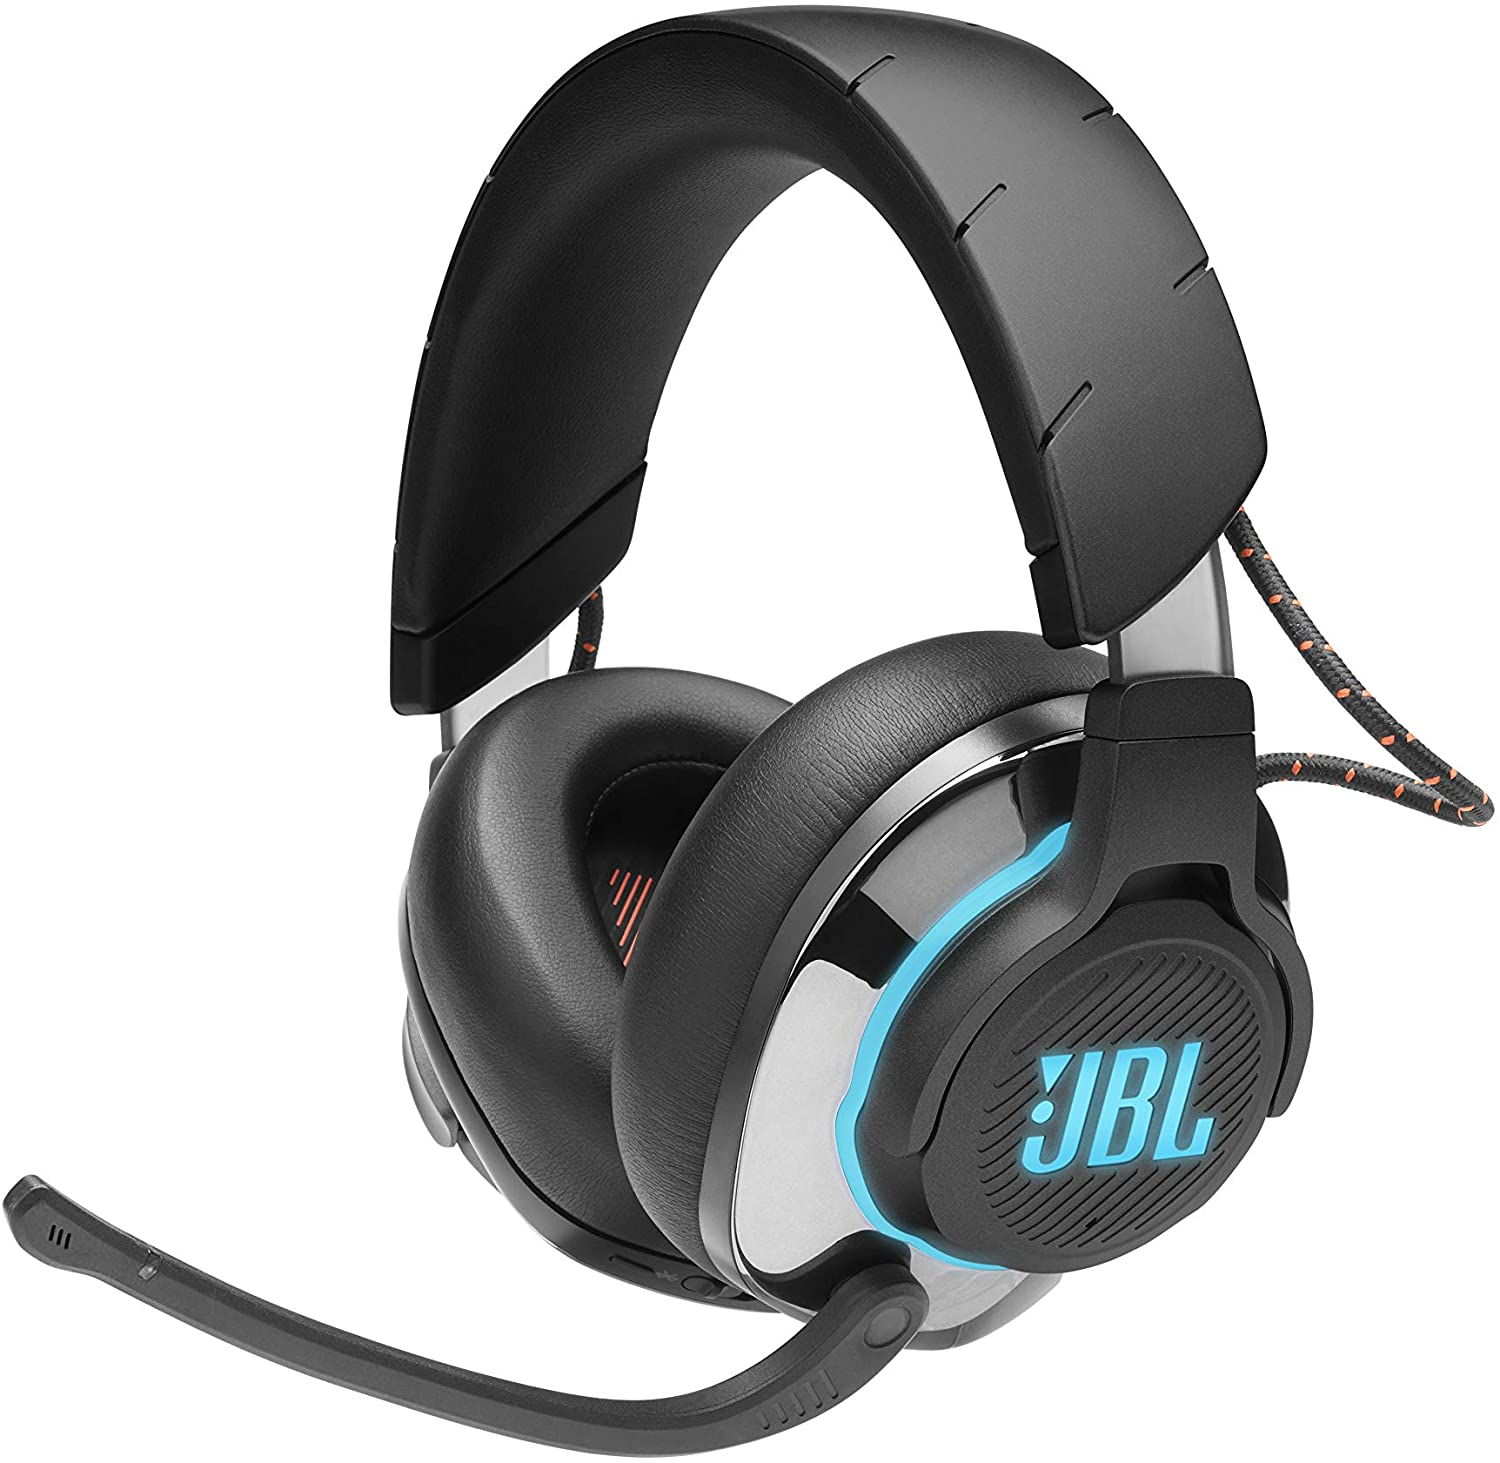 Amazon Com Jbl Quantum 800 Wireless Bluetooth Noise Cancelling Gaming Headset With Microphone And Rgb Pc And Console Compatible Black Electronics